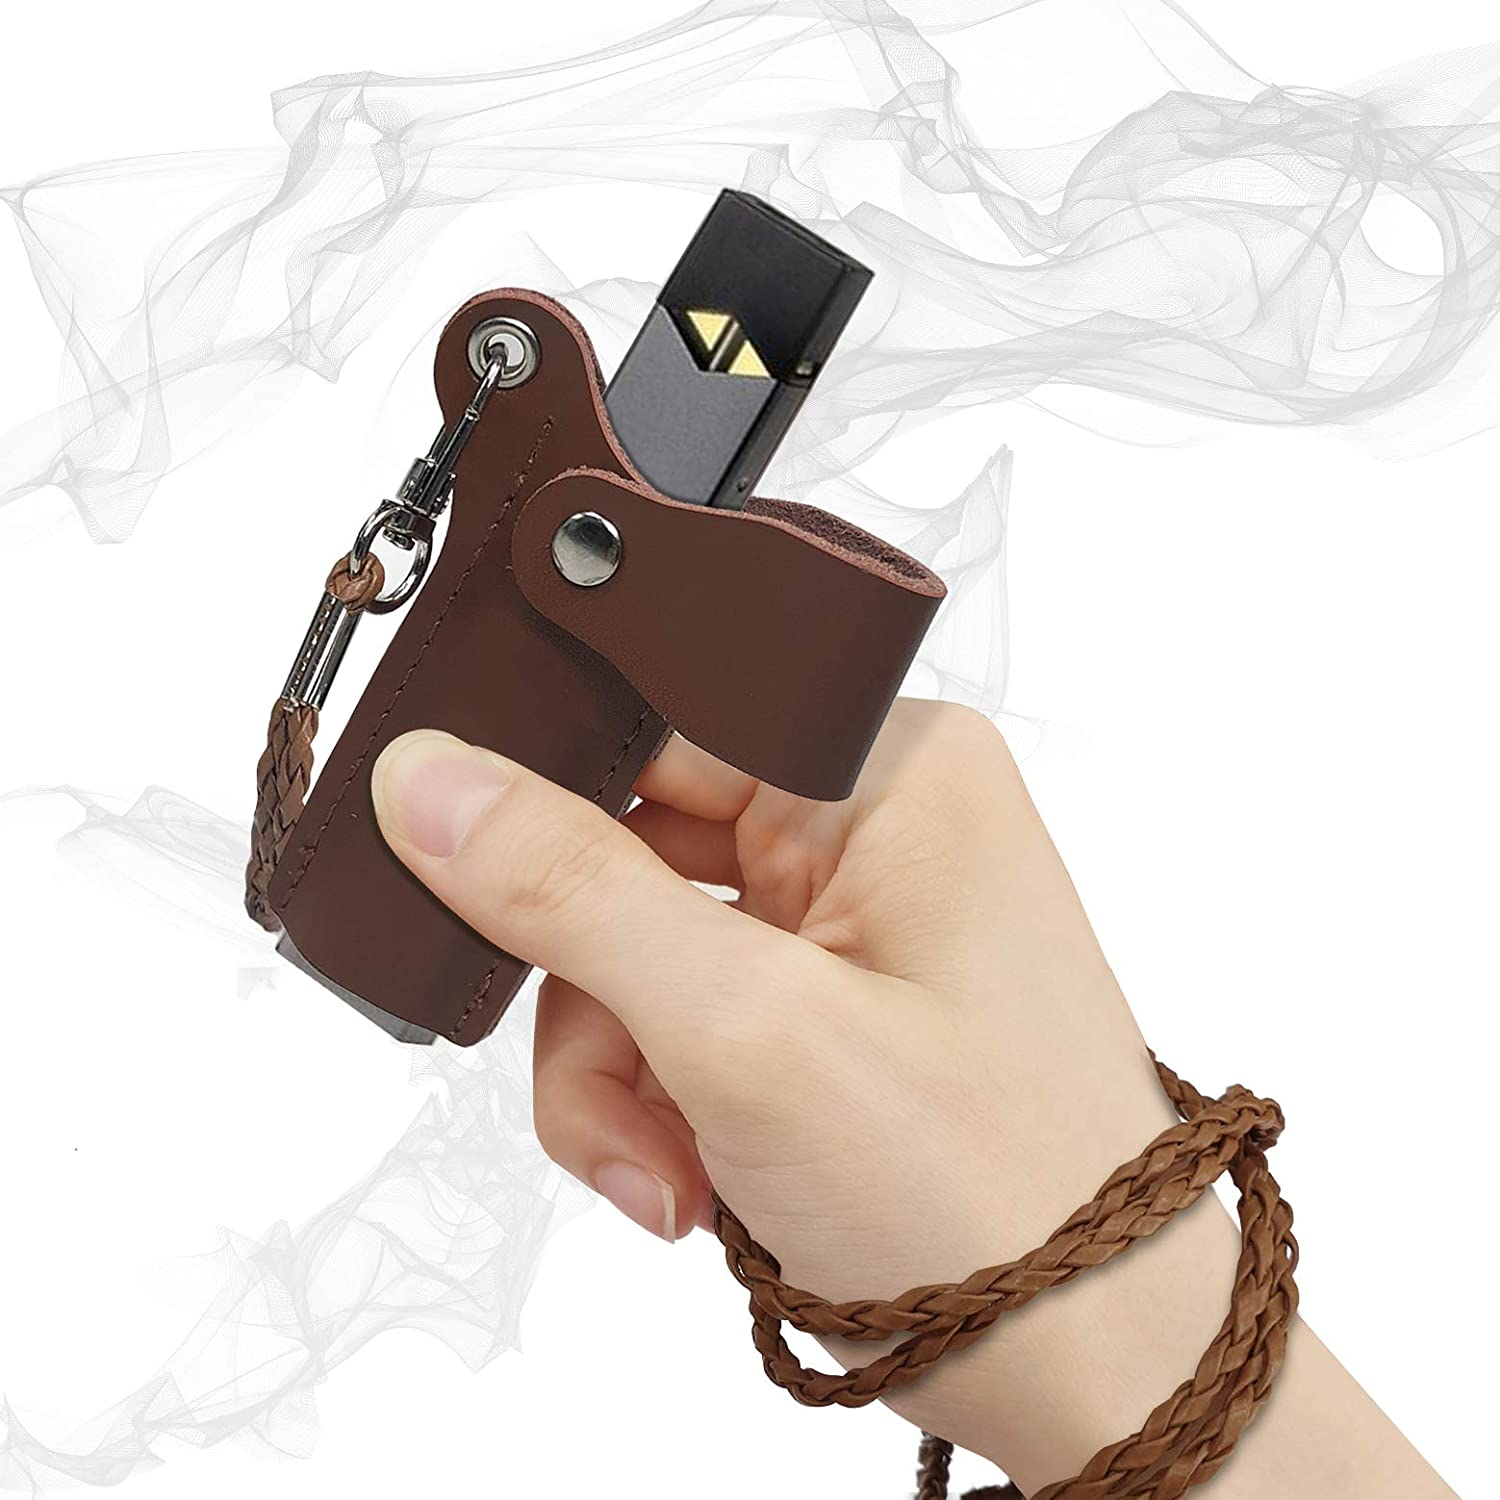 2pack Leather Lanyard Necklace Holder Case Cover Anti-Loss Pouch Cap for JUUL Black//Brown